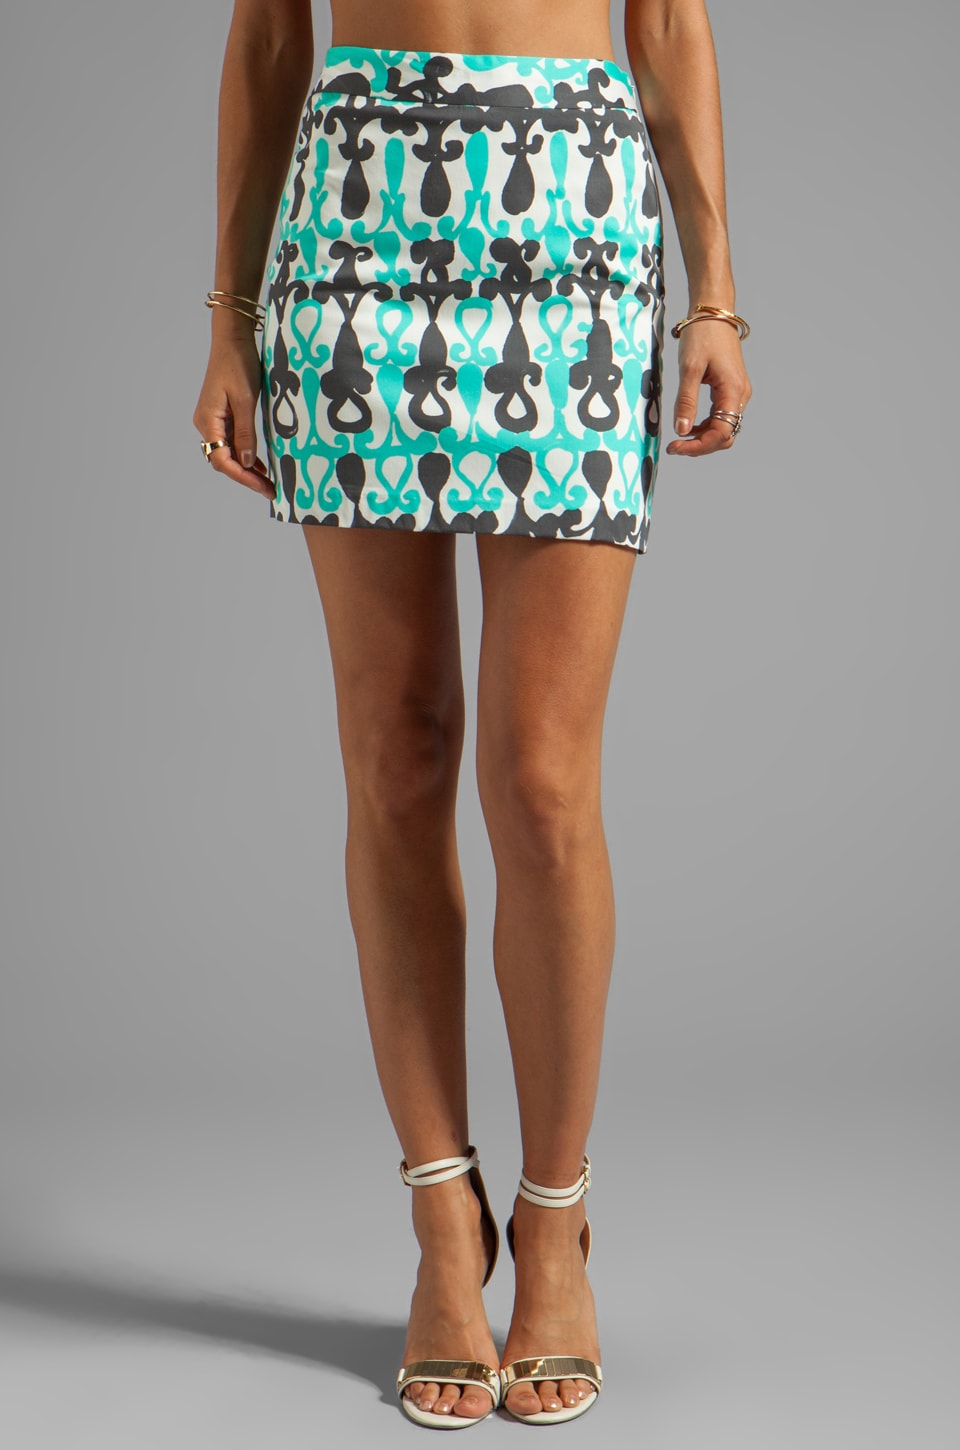 MILLY Moroccan Print A-line Mini Skirt in Aqua